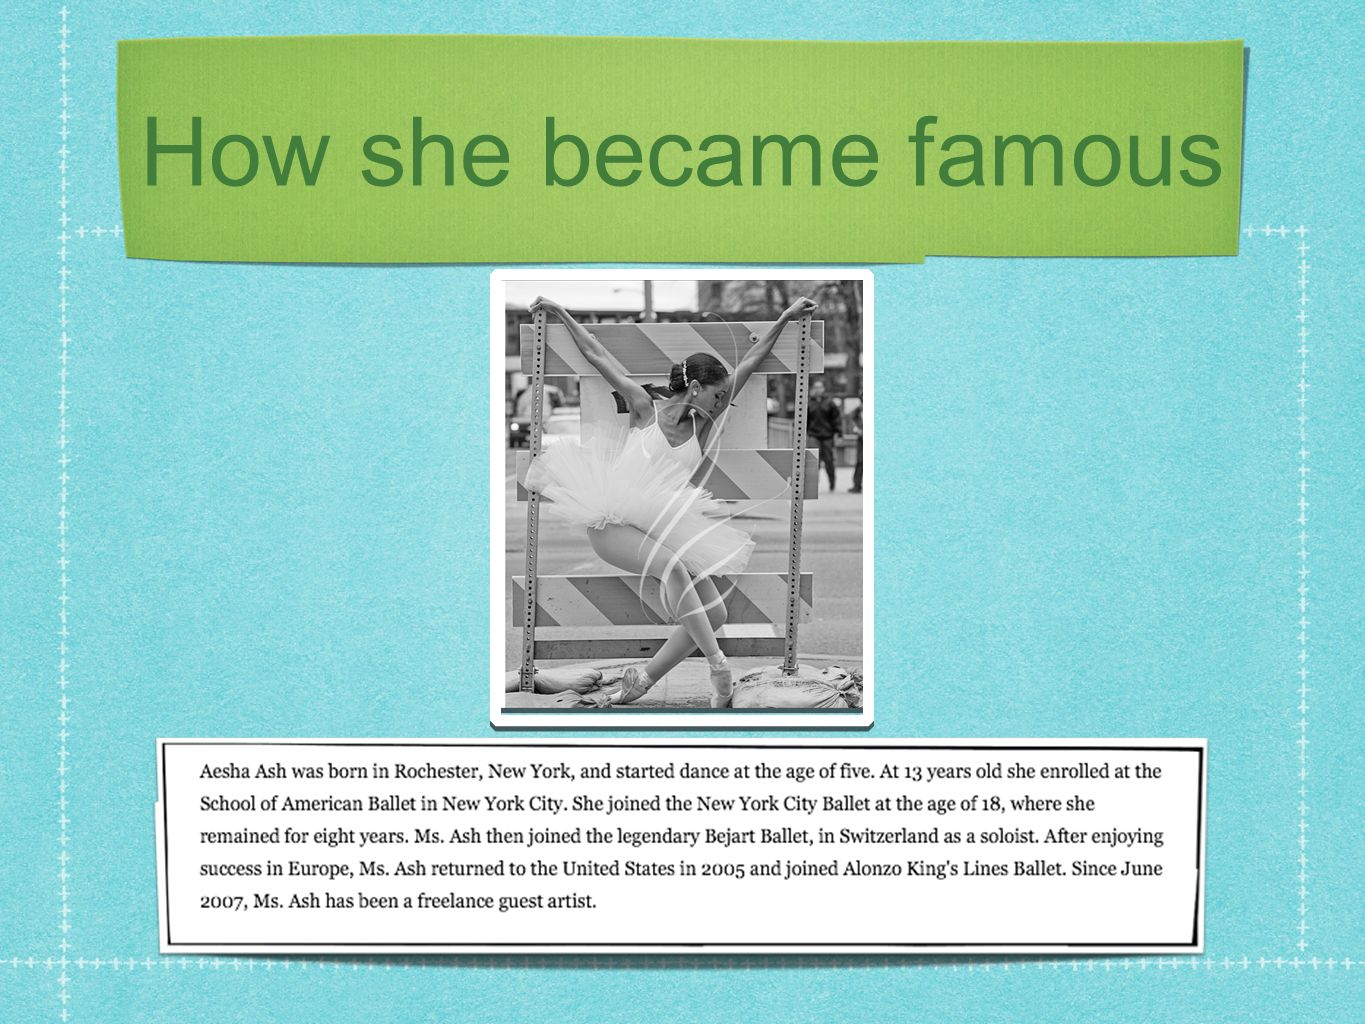 How she became famous